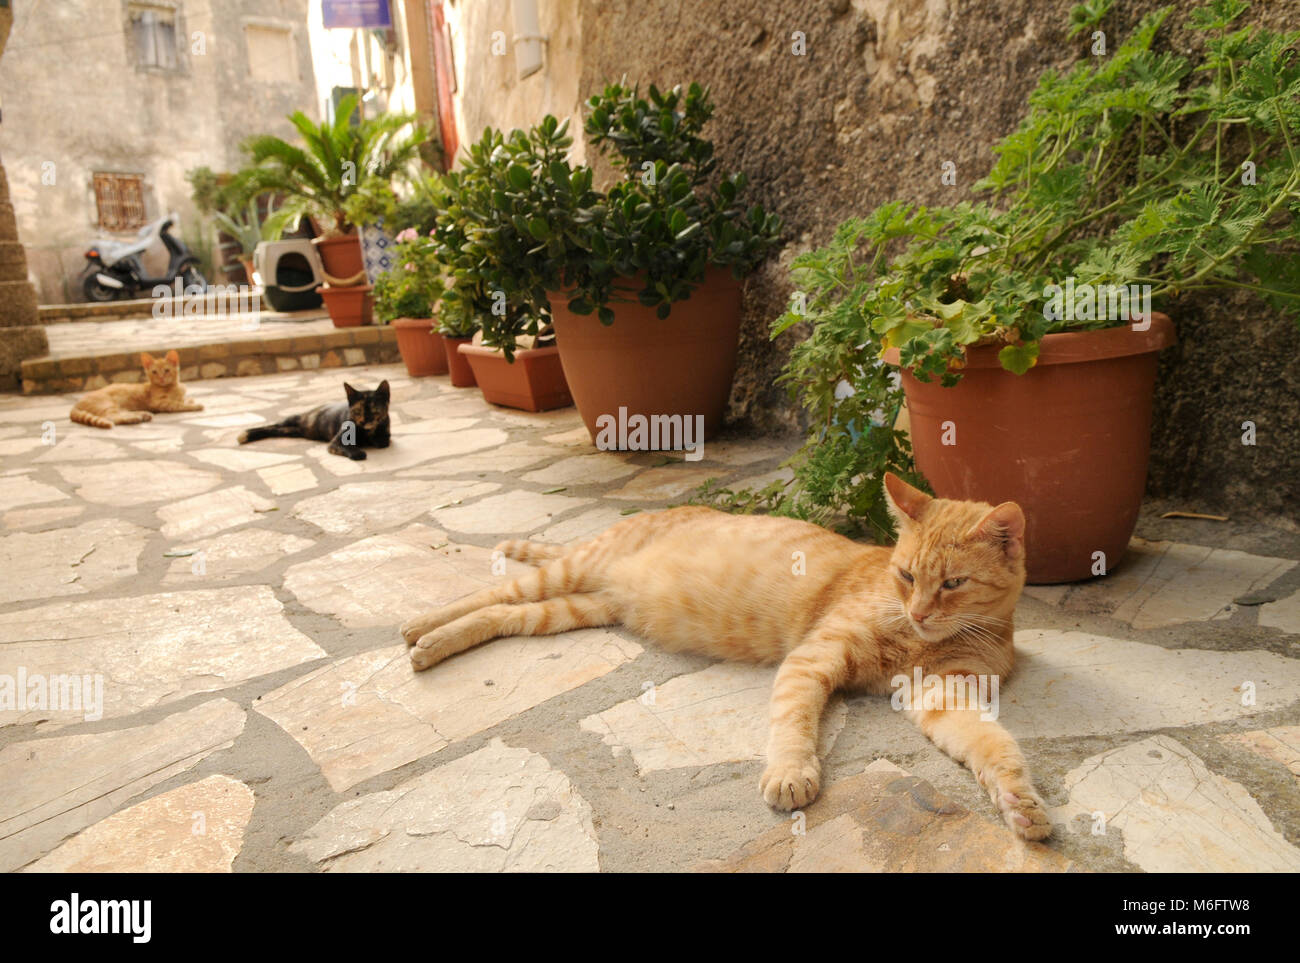 Three cats living in the streets of greek city Corfu - Stock Image